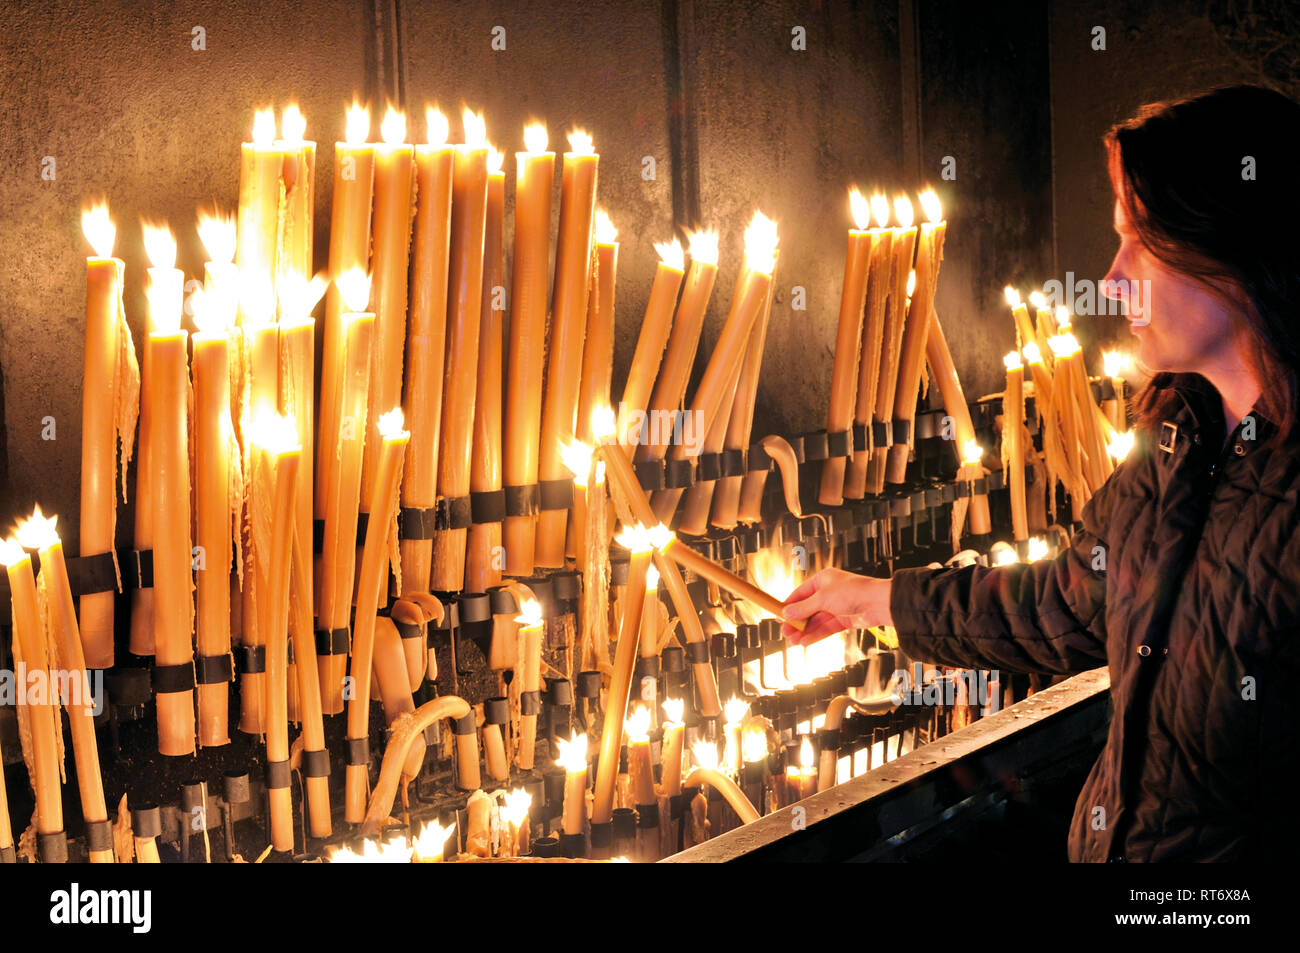 Woman lightening a candle at devotion altar - Stock Image